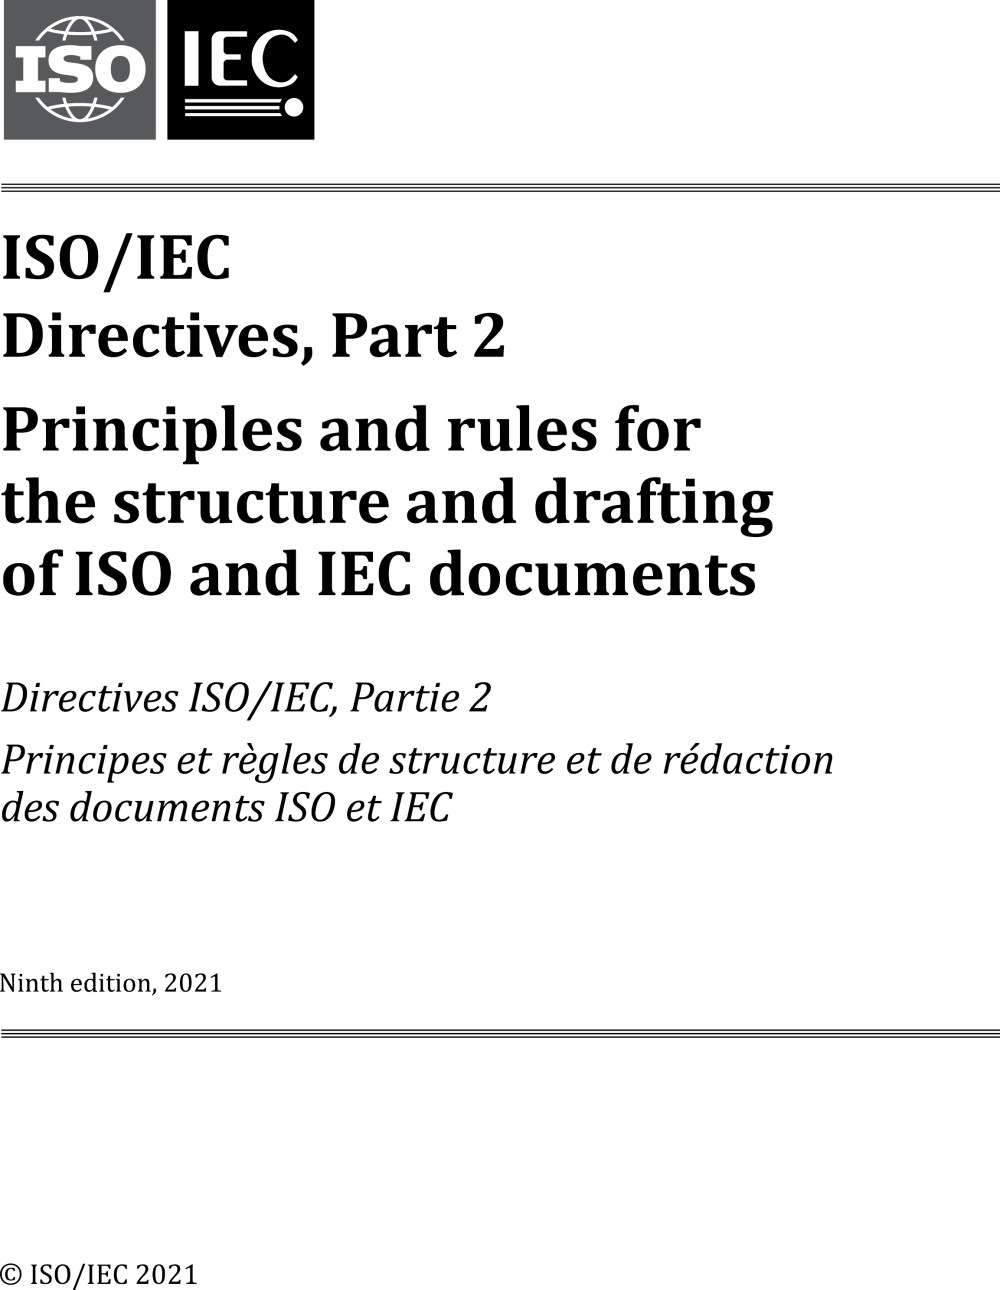 medium resolution of iso iec directives part 2 principles and rules for the structure and drafting of iso and iec documents